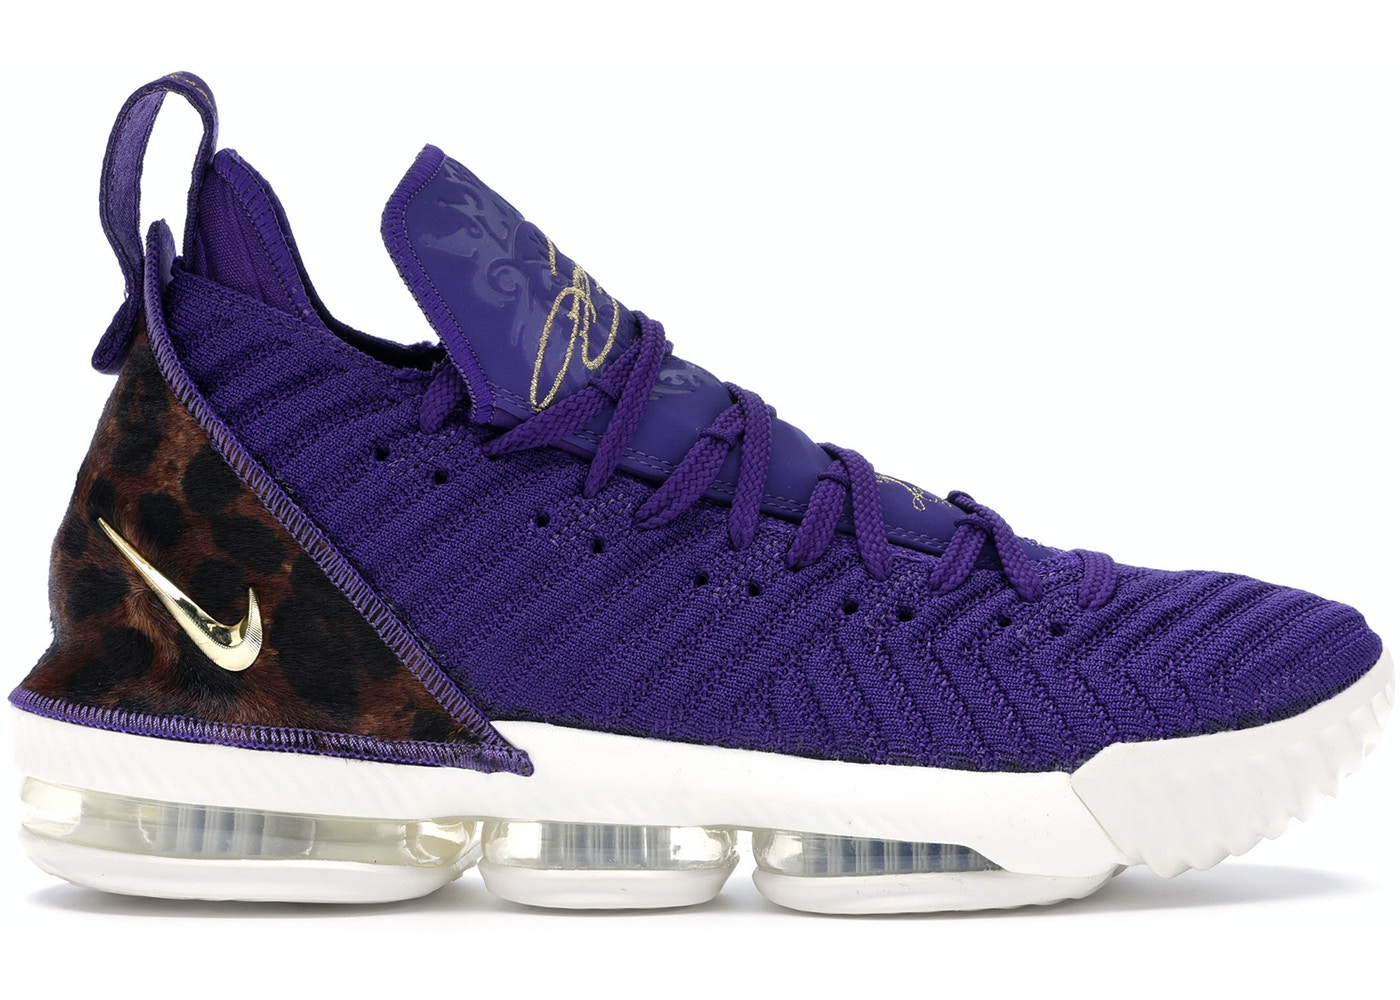 online retailer a378e 2e9da Lebron 16 King Court Purple